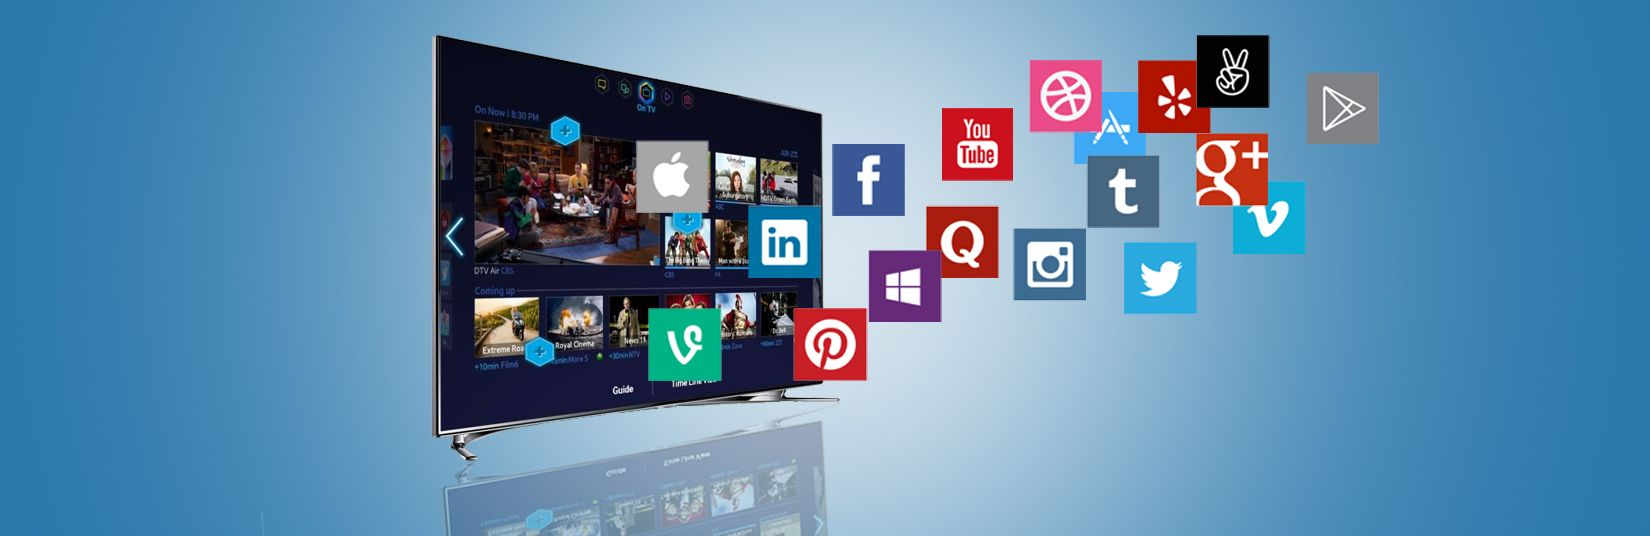 TV Apps For Android & iOS | Solutions and Services | App